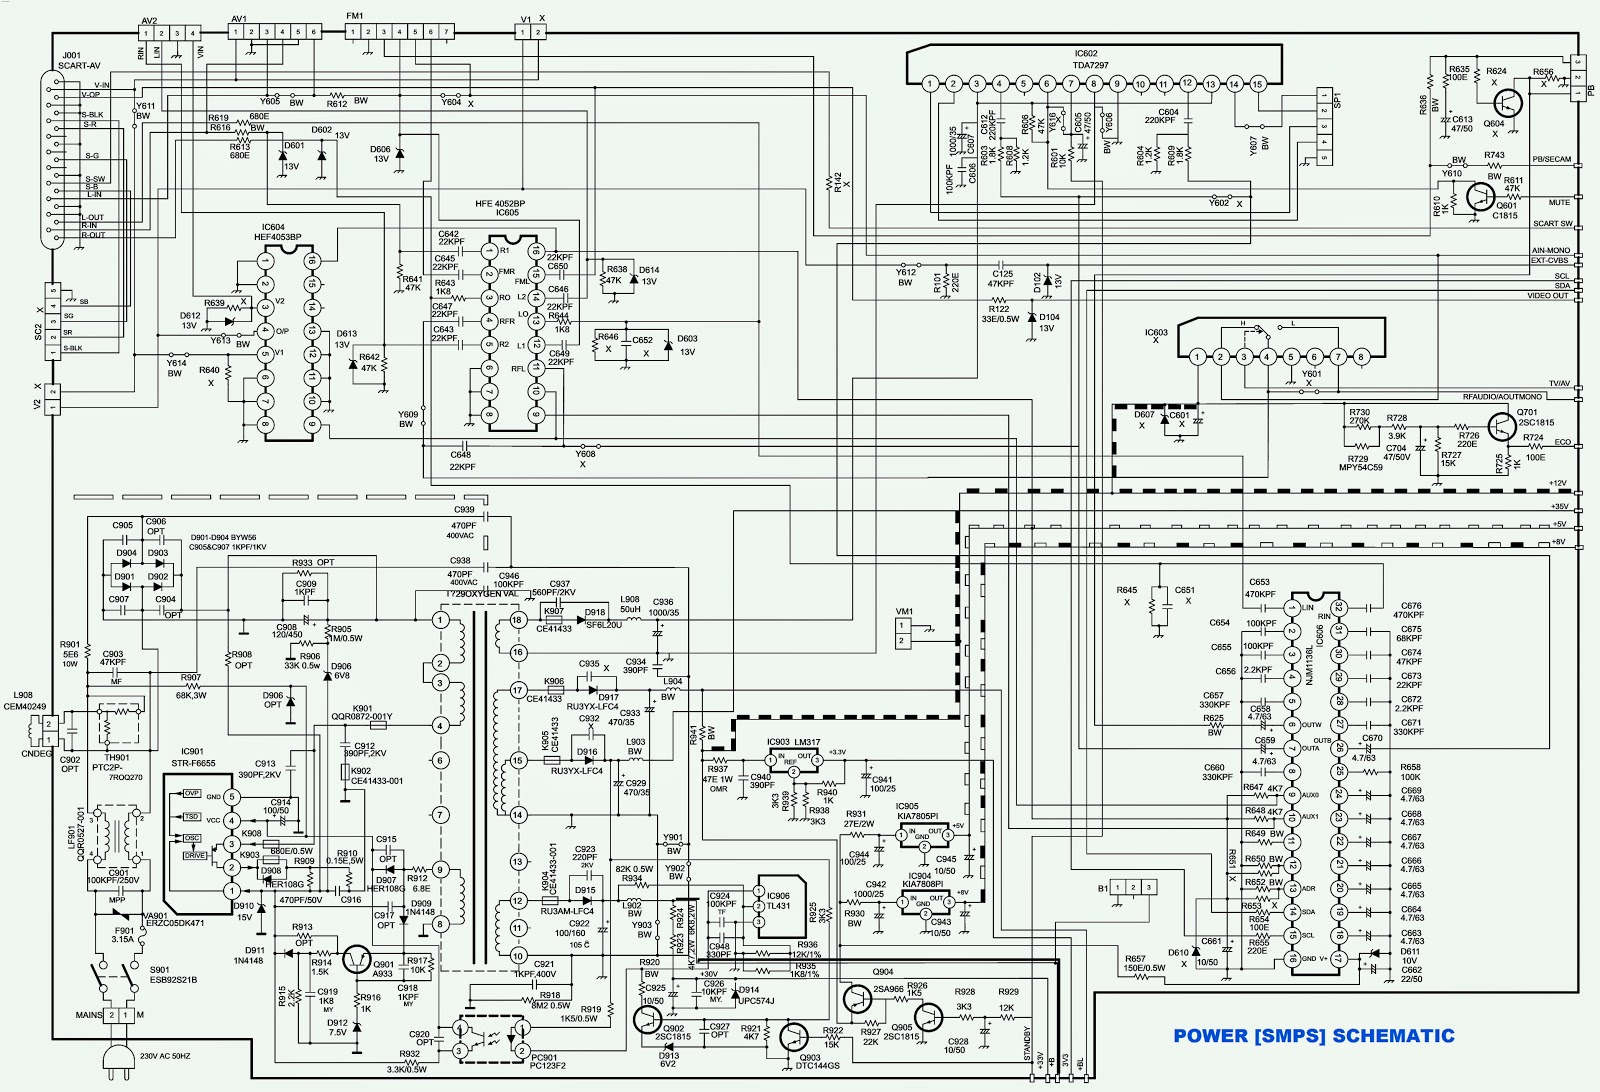 Toshiba Tv Circuit Diagram Wiring Libraries Diagrams Led Schematic Simple Diagramslg Data Schema